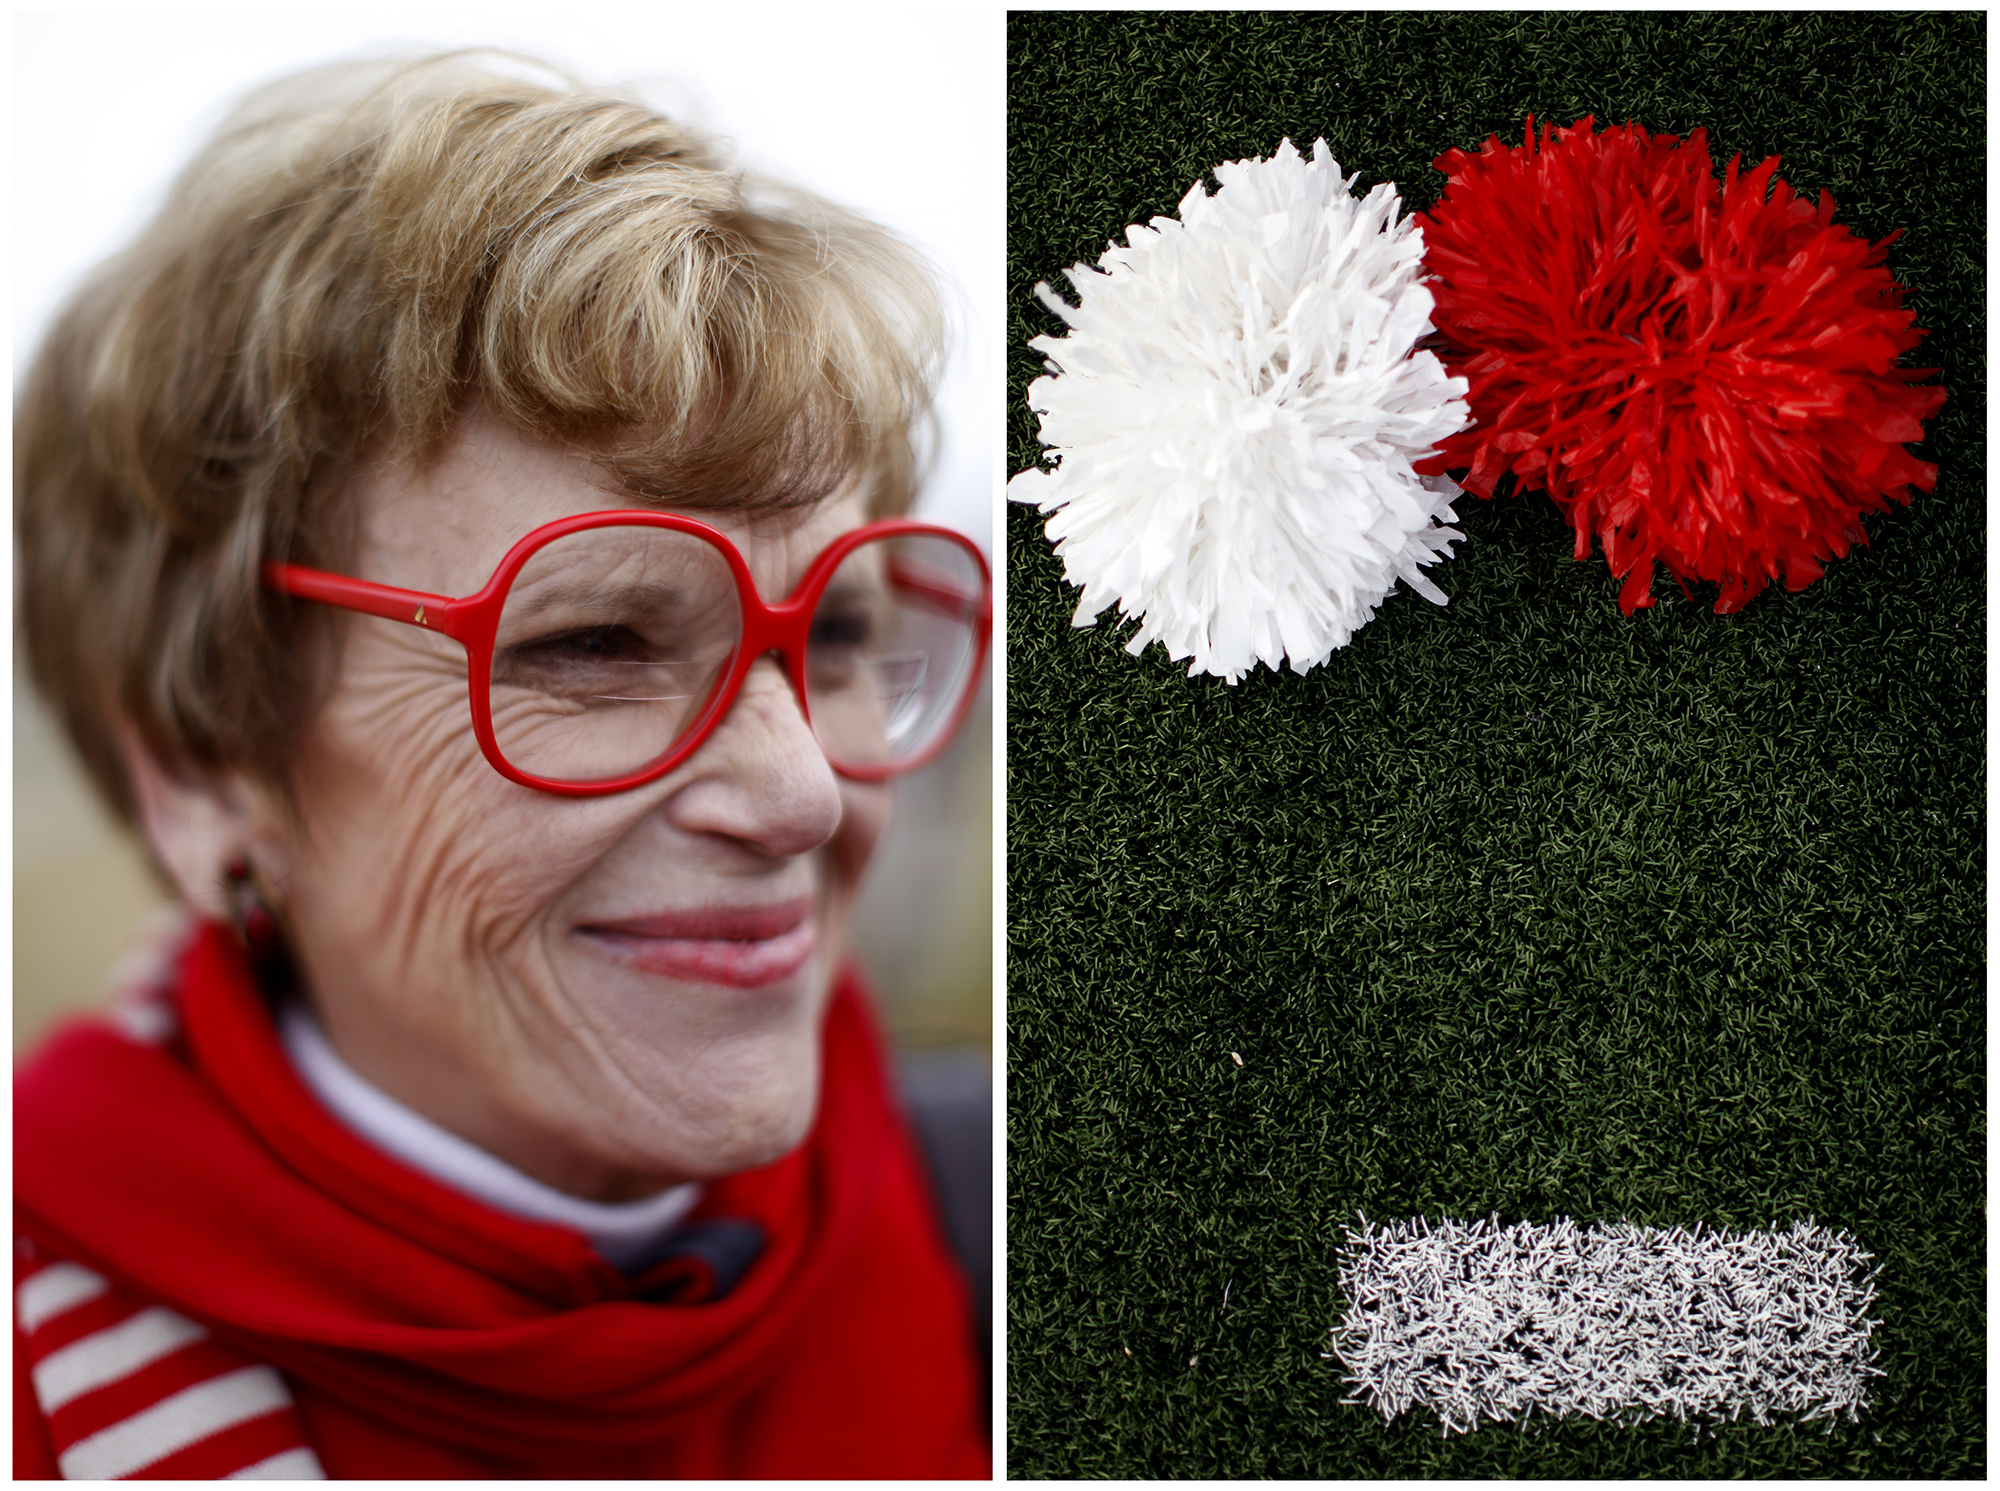 """Left: Cecile Garmon, a communications professor at WKU, poses for a portrait in her red Liz Claiborne glasses. Garmon has been a professor since the 1980's and has sported her collection of colored glasses since the 80's as well. She has colors from orange to green and says she wishes she would have bought every color when Liz Claiborne came out with the glasses in the 80's. """"I love Homecoming, but it isn't as much fun as coming to class everyday,"""" Garmon said. Right: WKU cheerleader's pom-poms rest on the sidelines of L.T. Smith's Stadium during the Homecoming game on Saturday, Nov. 8, 2014."""